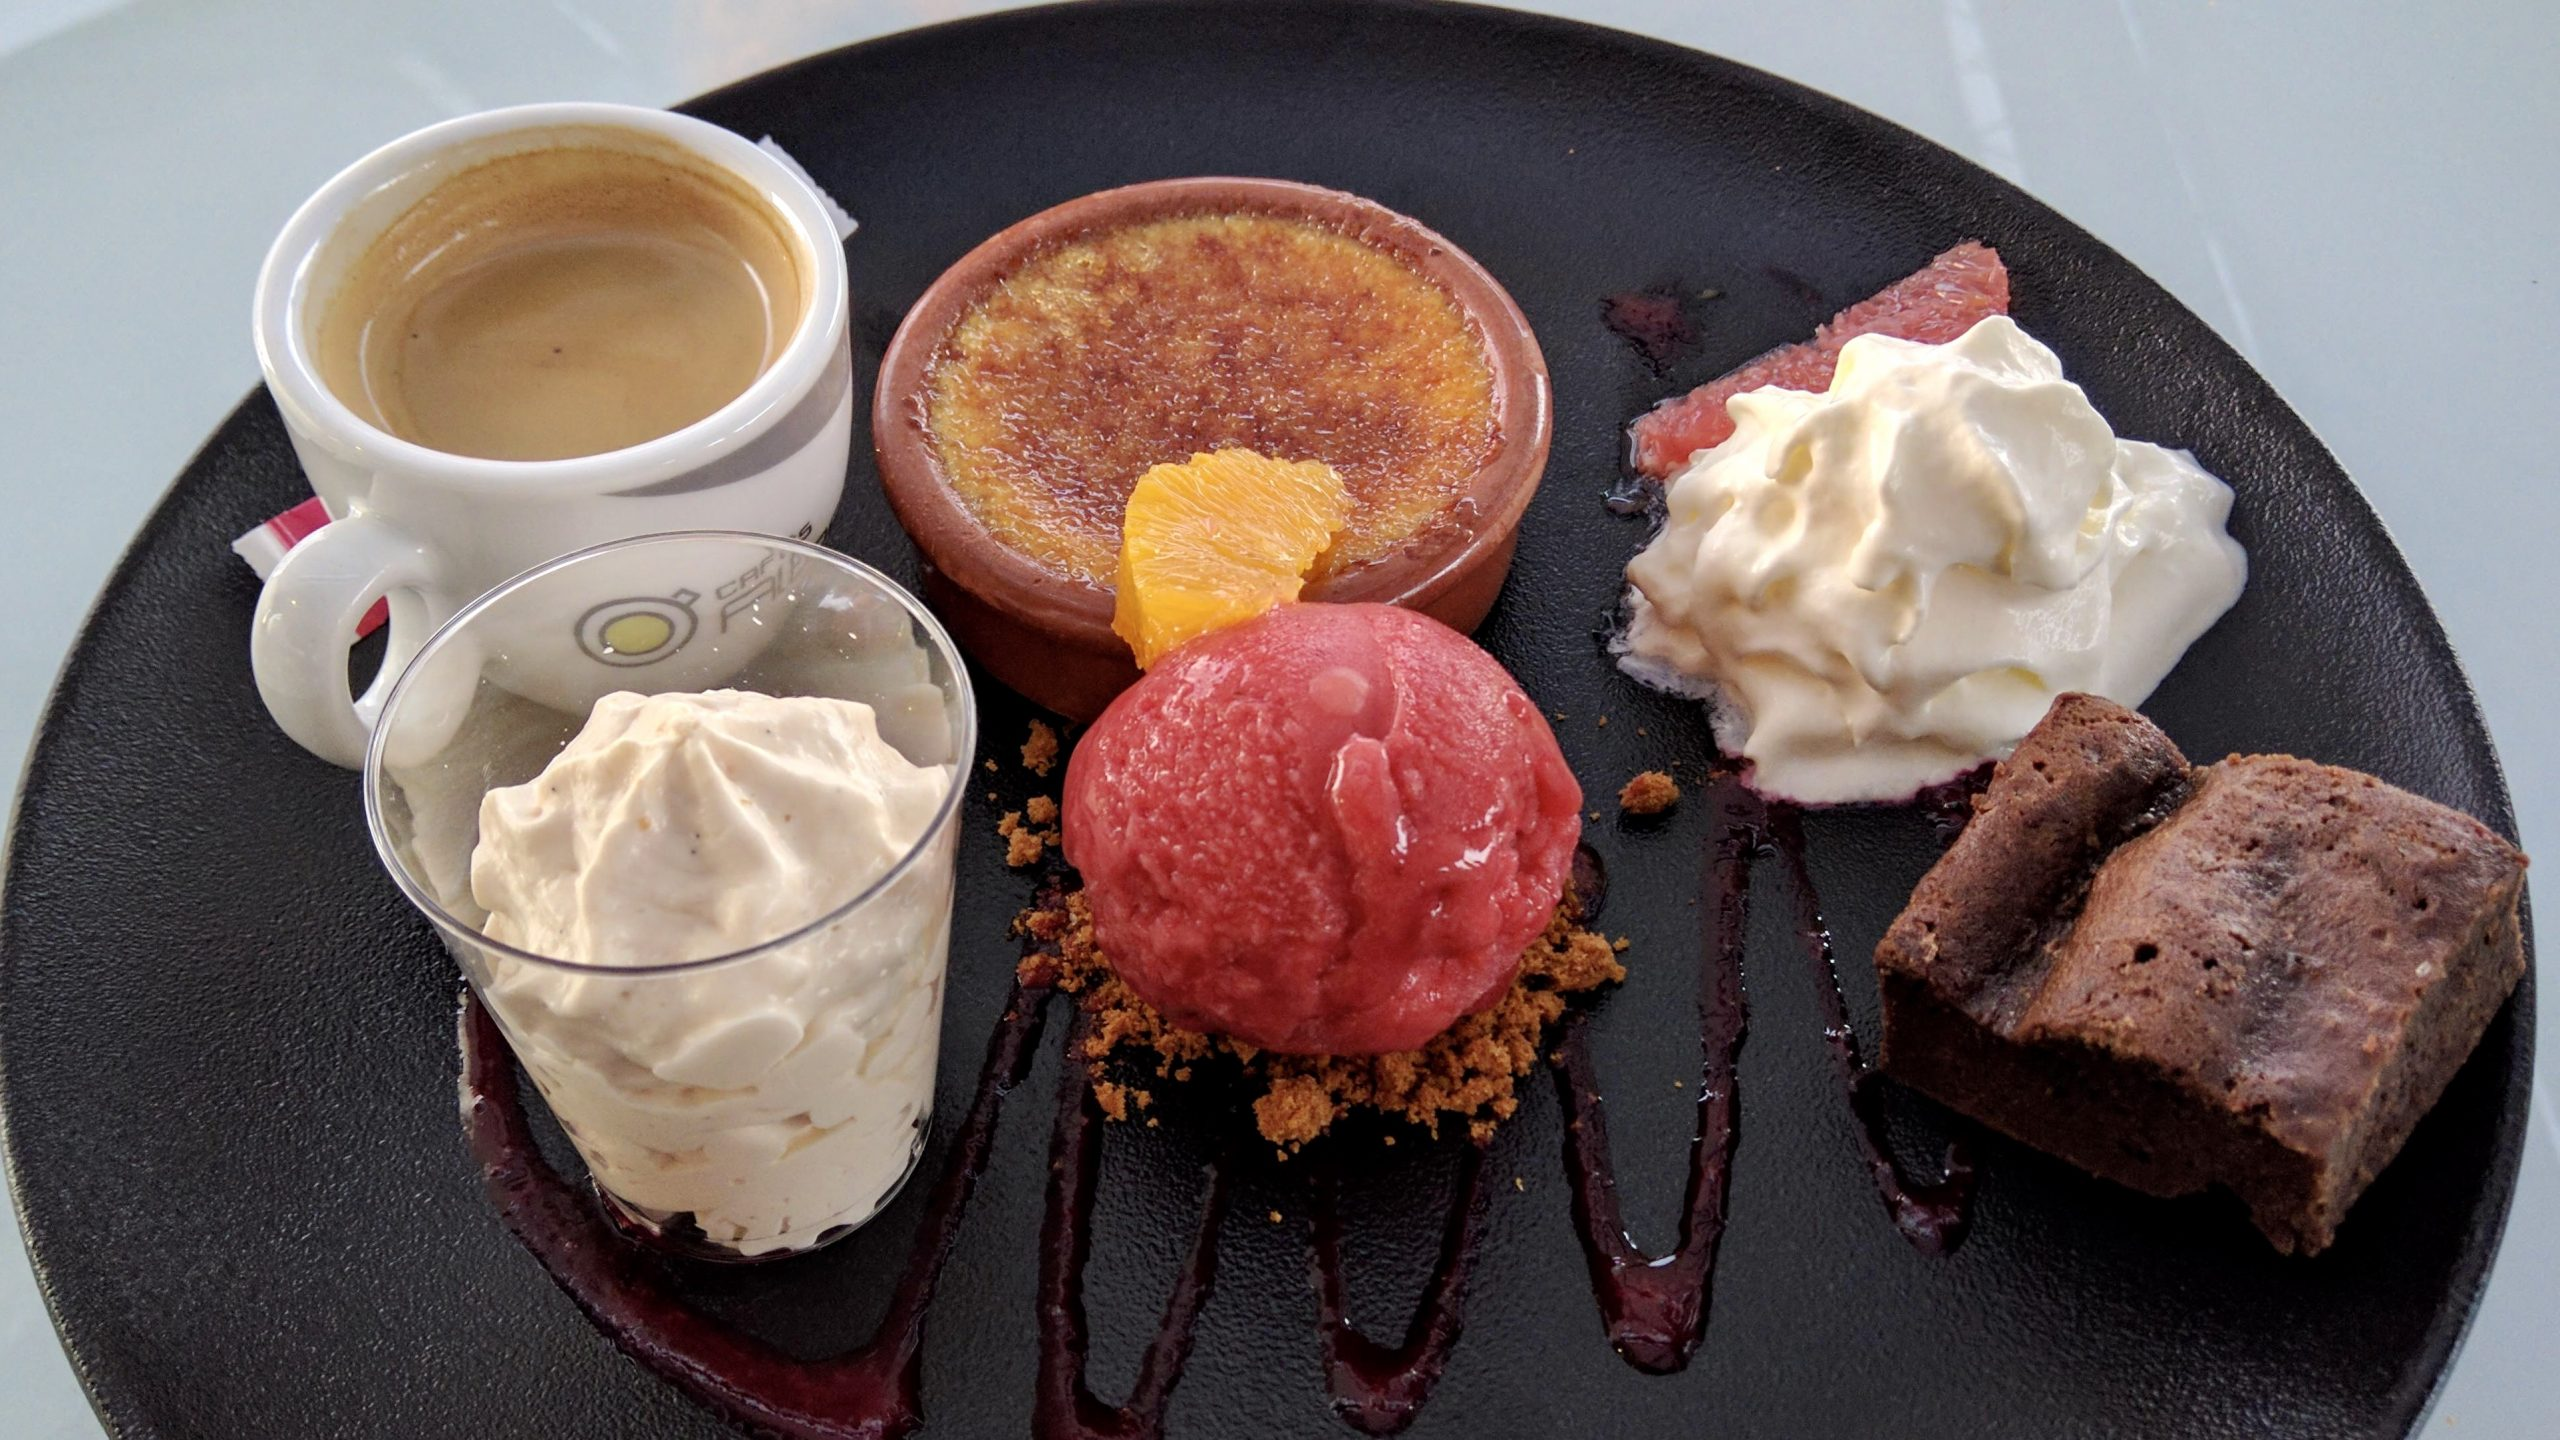 A dessert in small French village